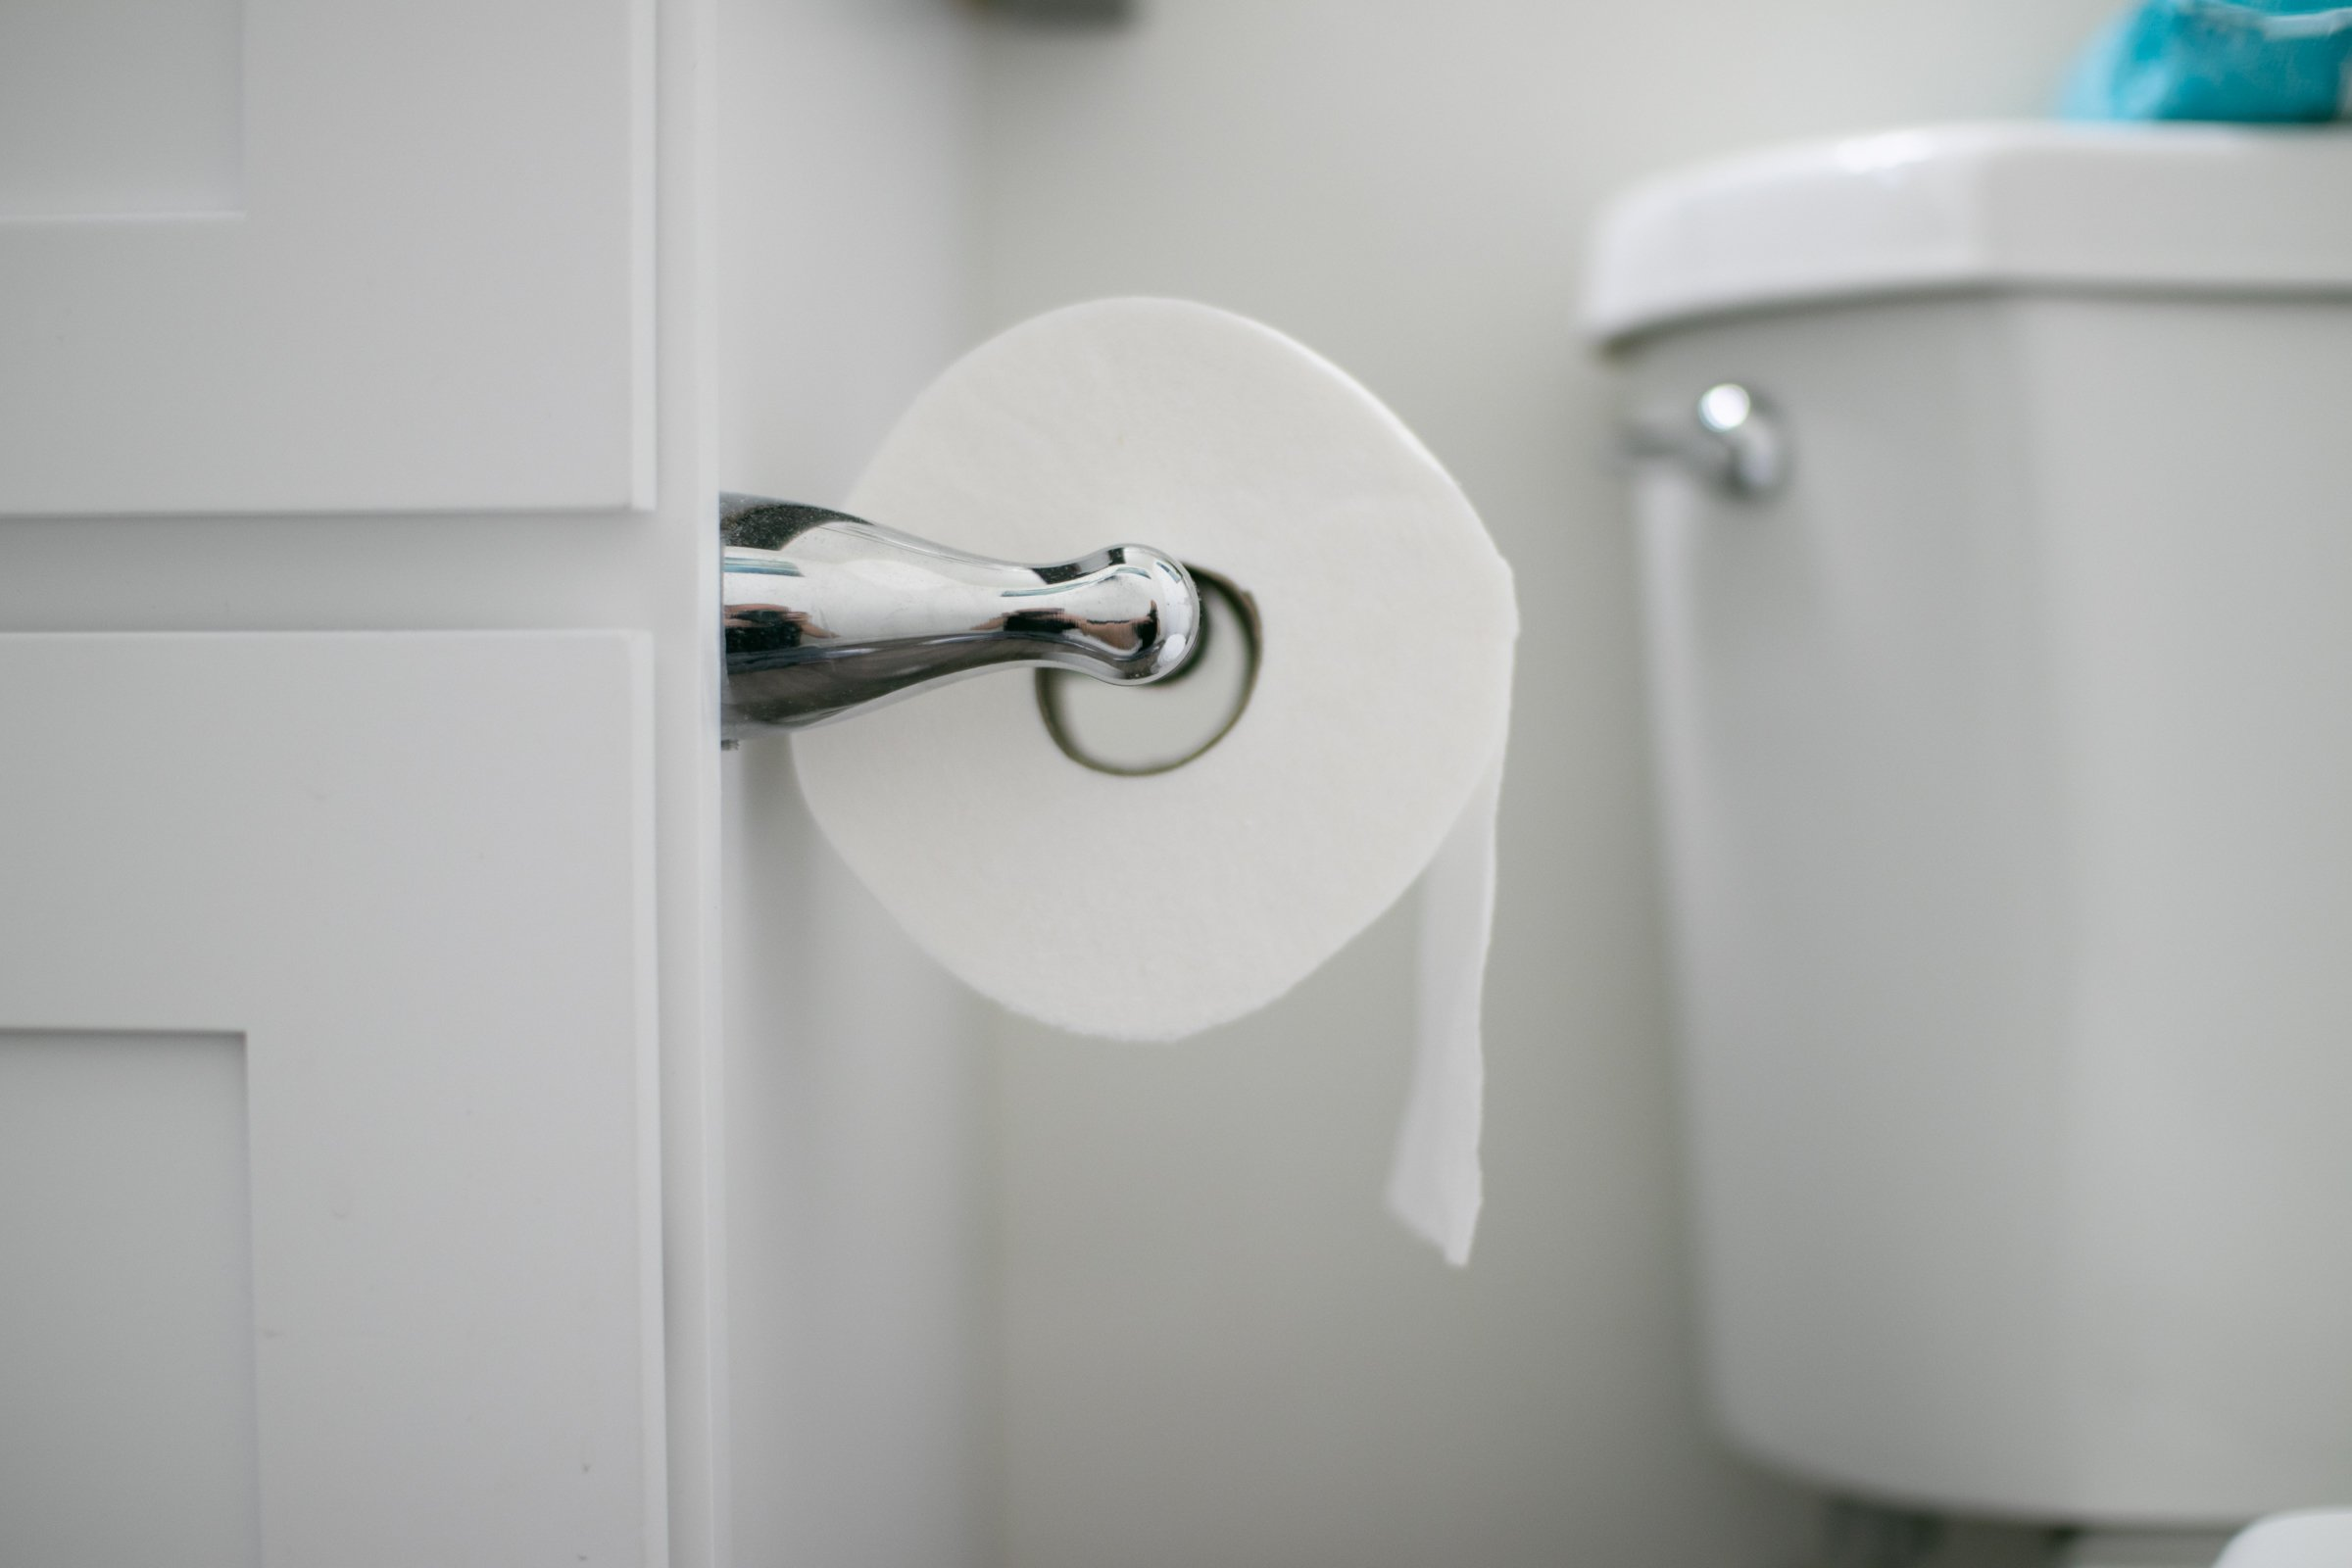 Paper Roll On Holder Next To Toilet